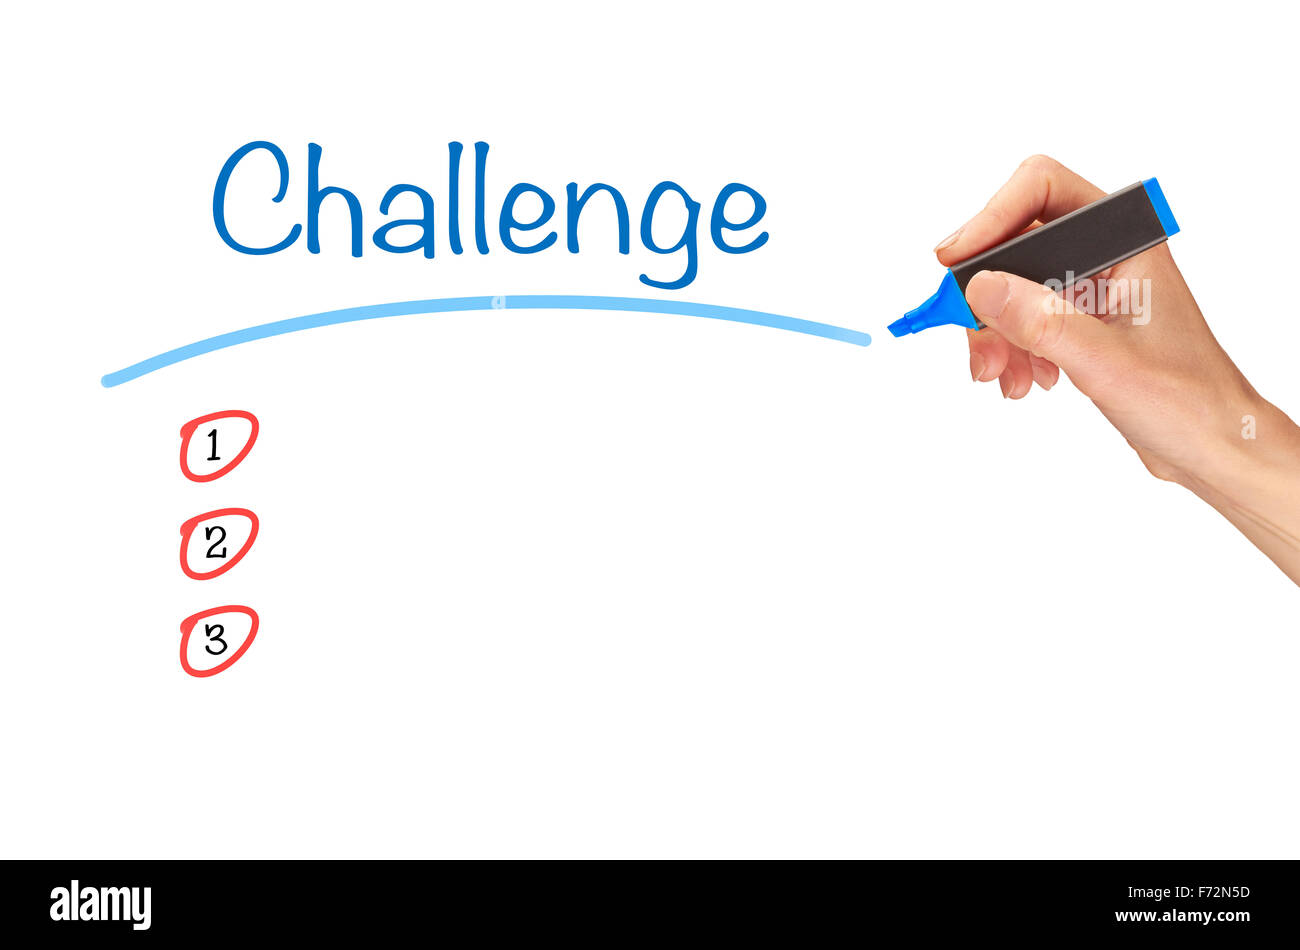 Challenge, written in marker on a clear screen. - Stock Image